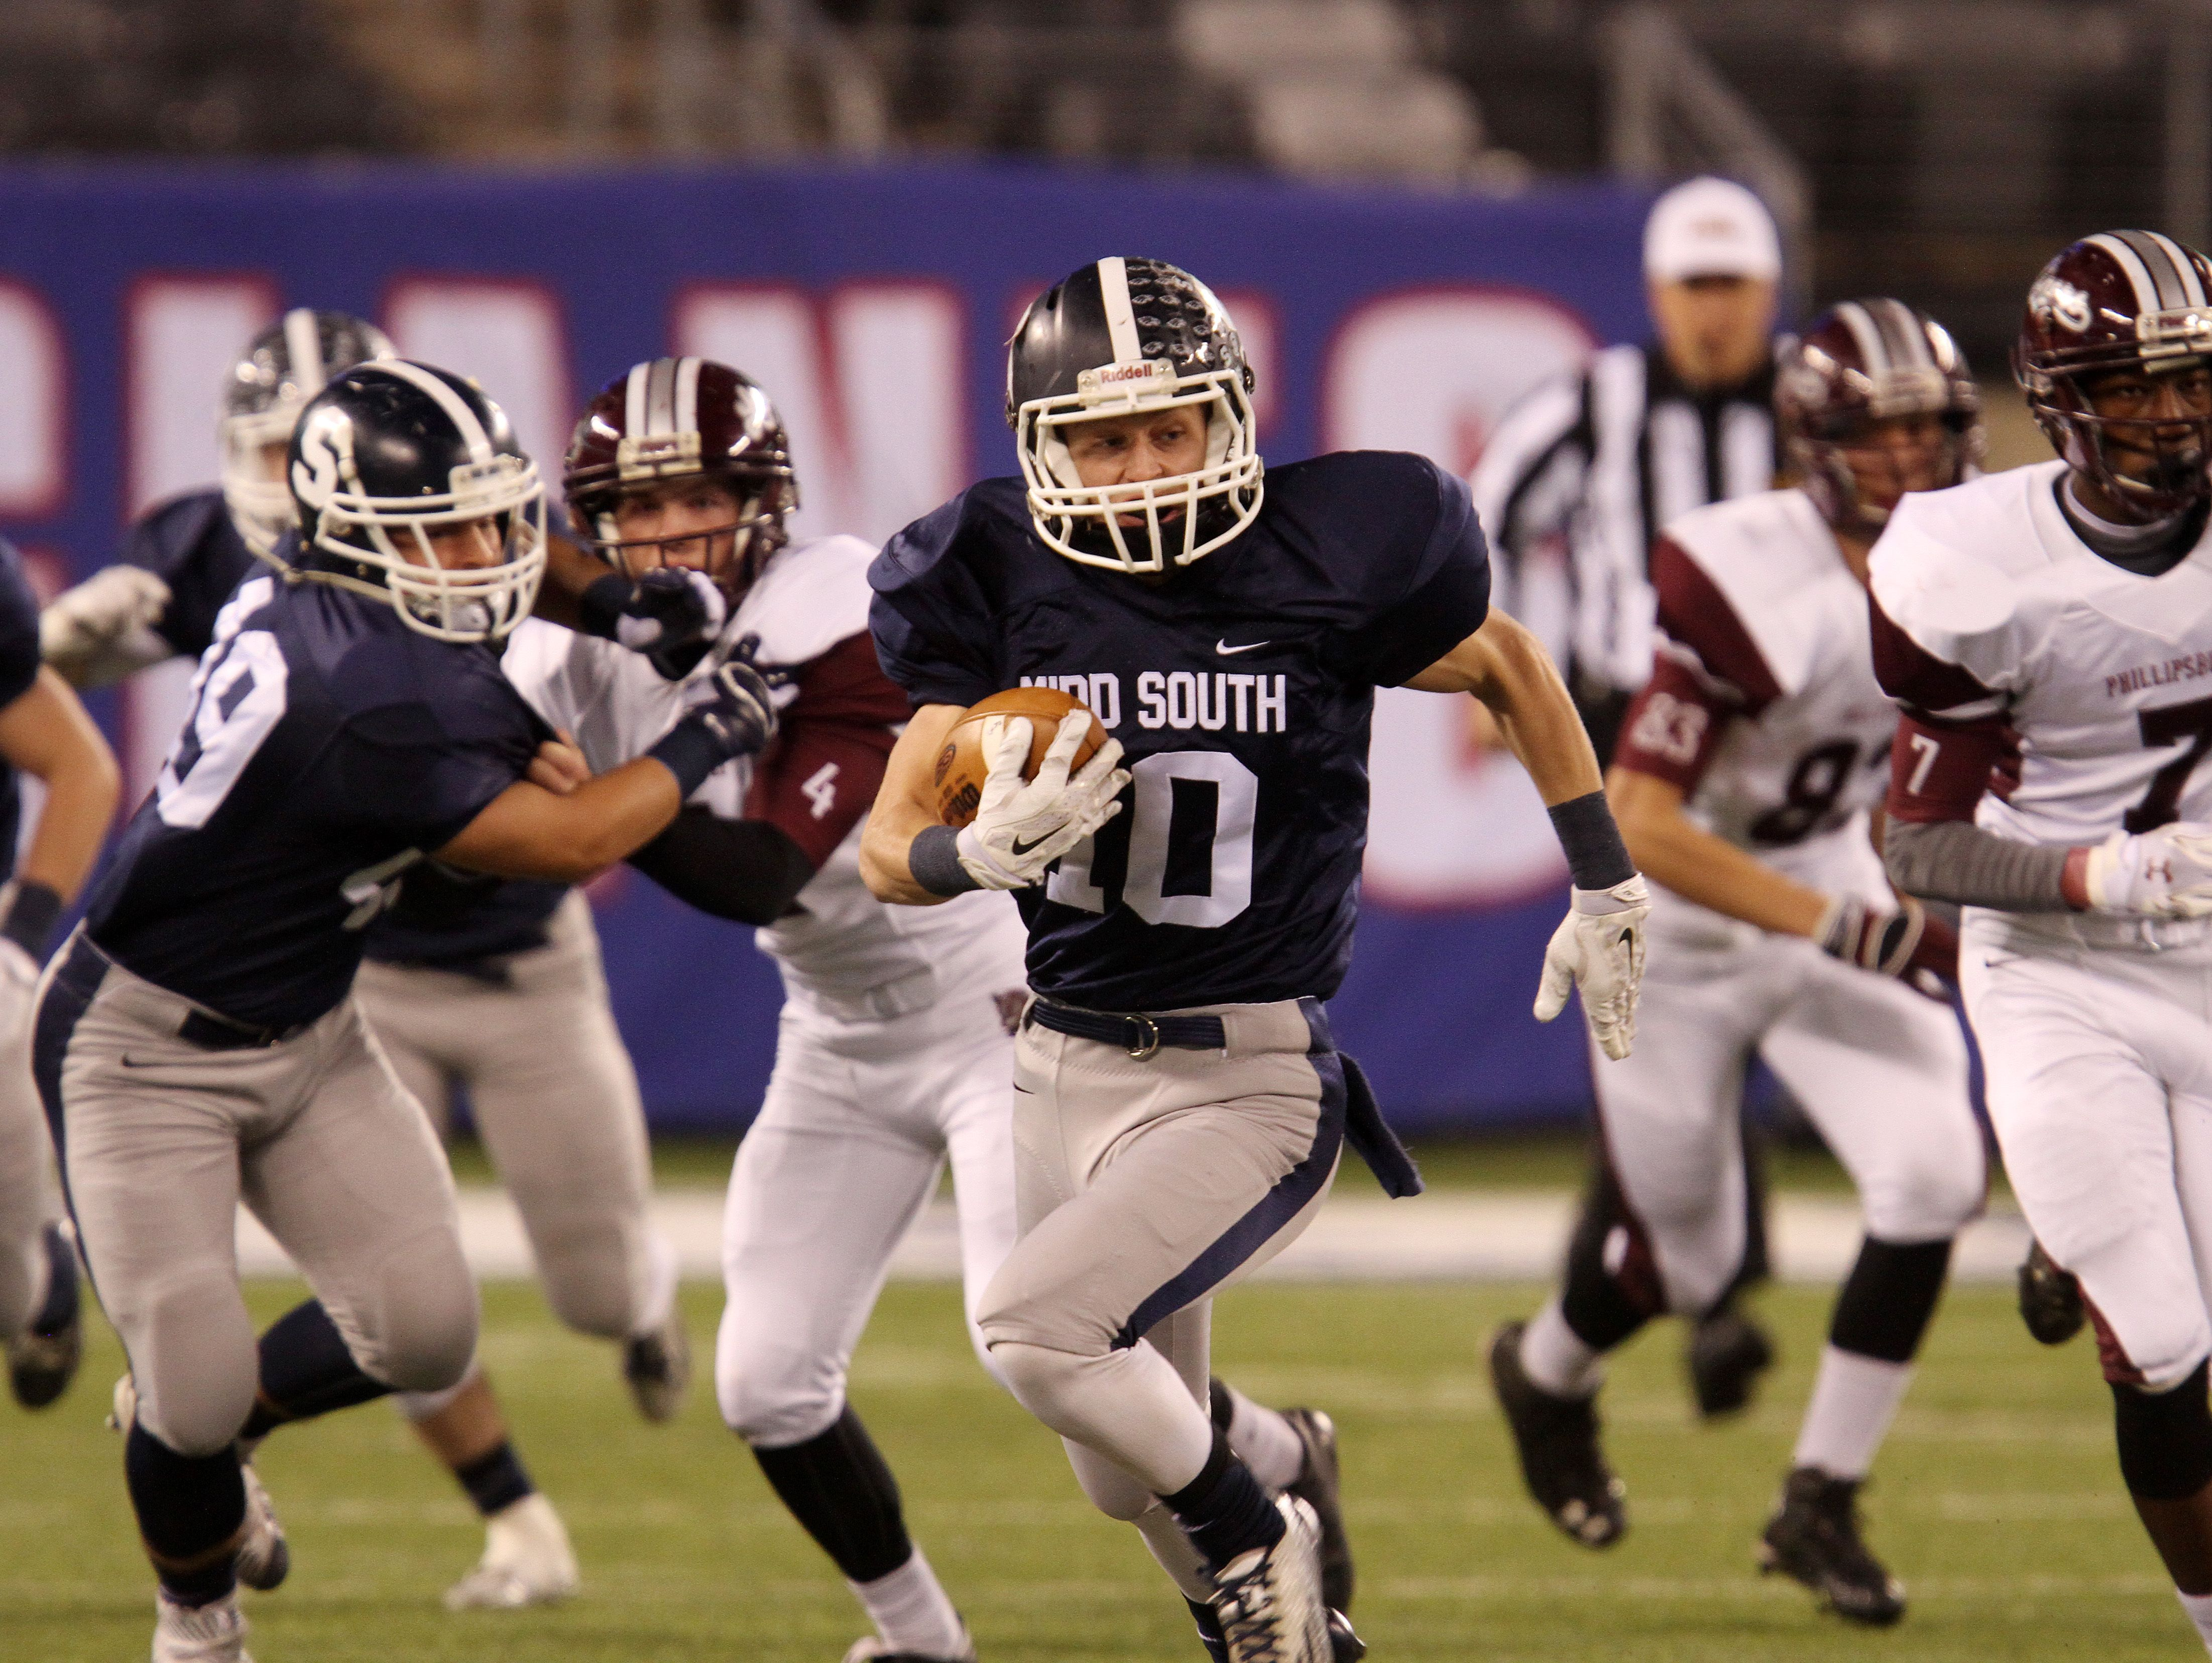 Middletown South' Jeff Lewandowski (10) makes a run early in the first quarter against Phillipsburg during the Eagles' victory in the NJSIAA North II Group IV final.